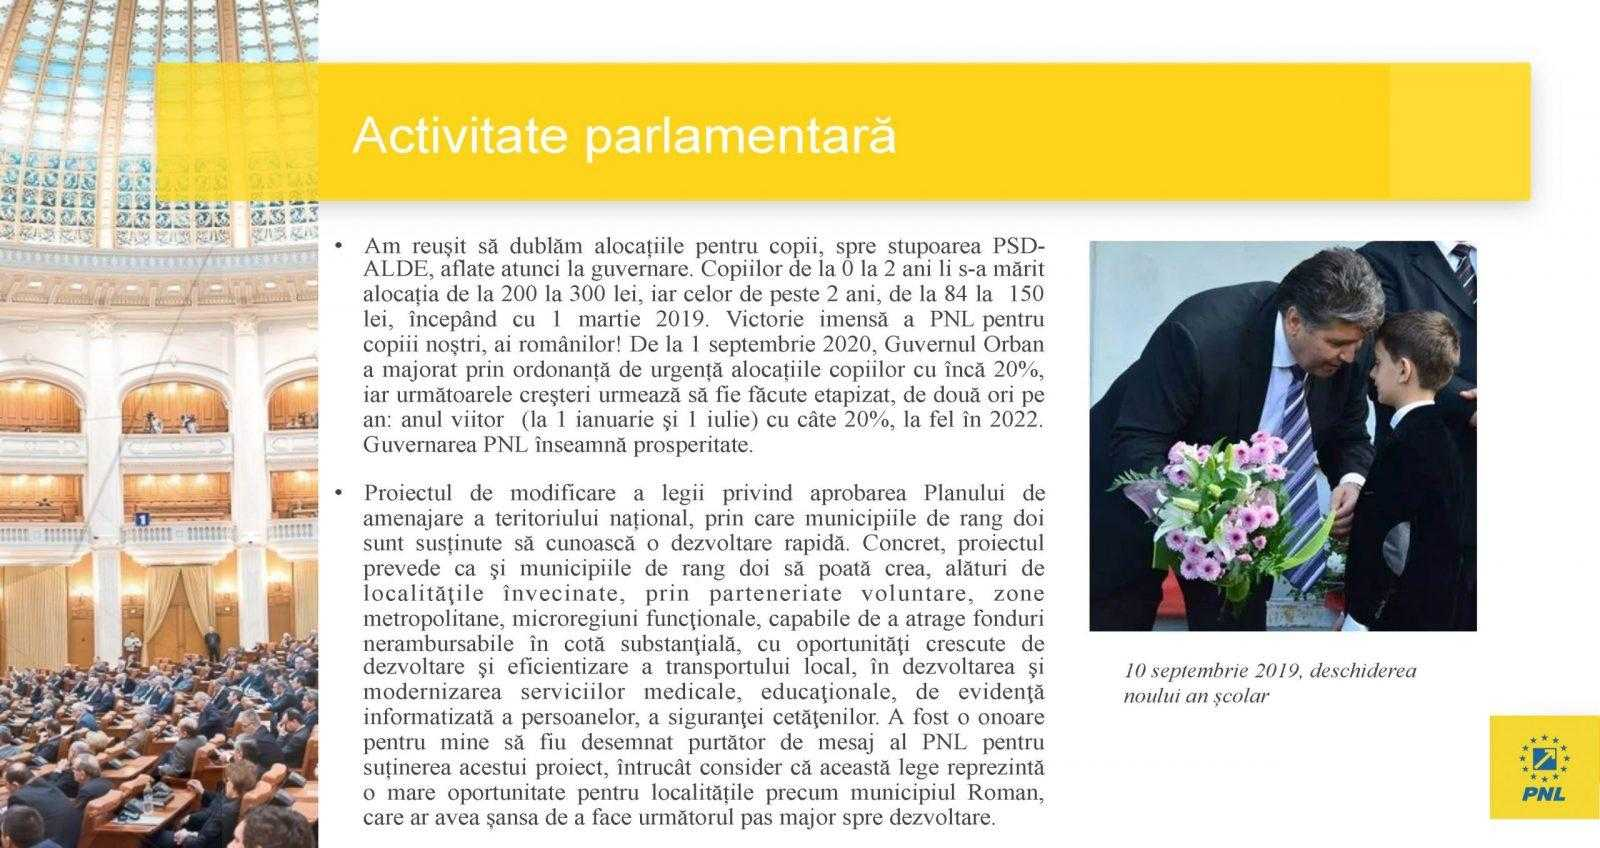 raport de activitate laurentiu leoreanu Page 06 scaled